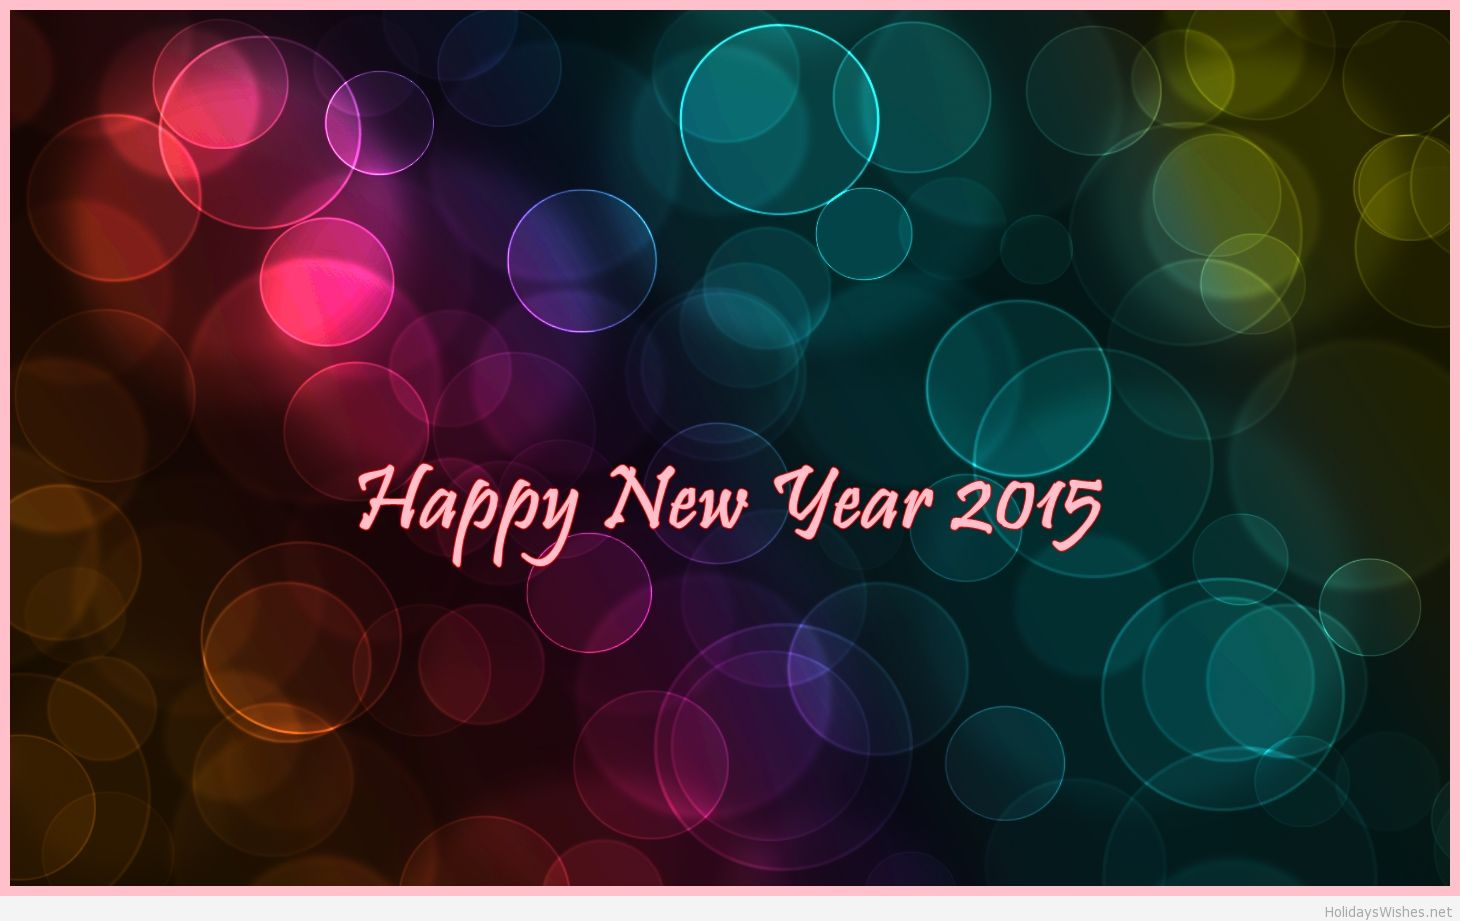 Happy-new-year-2015-images-HD